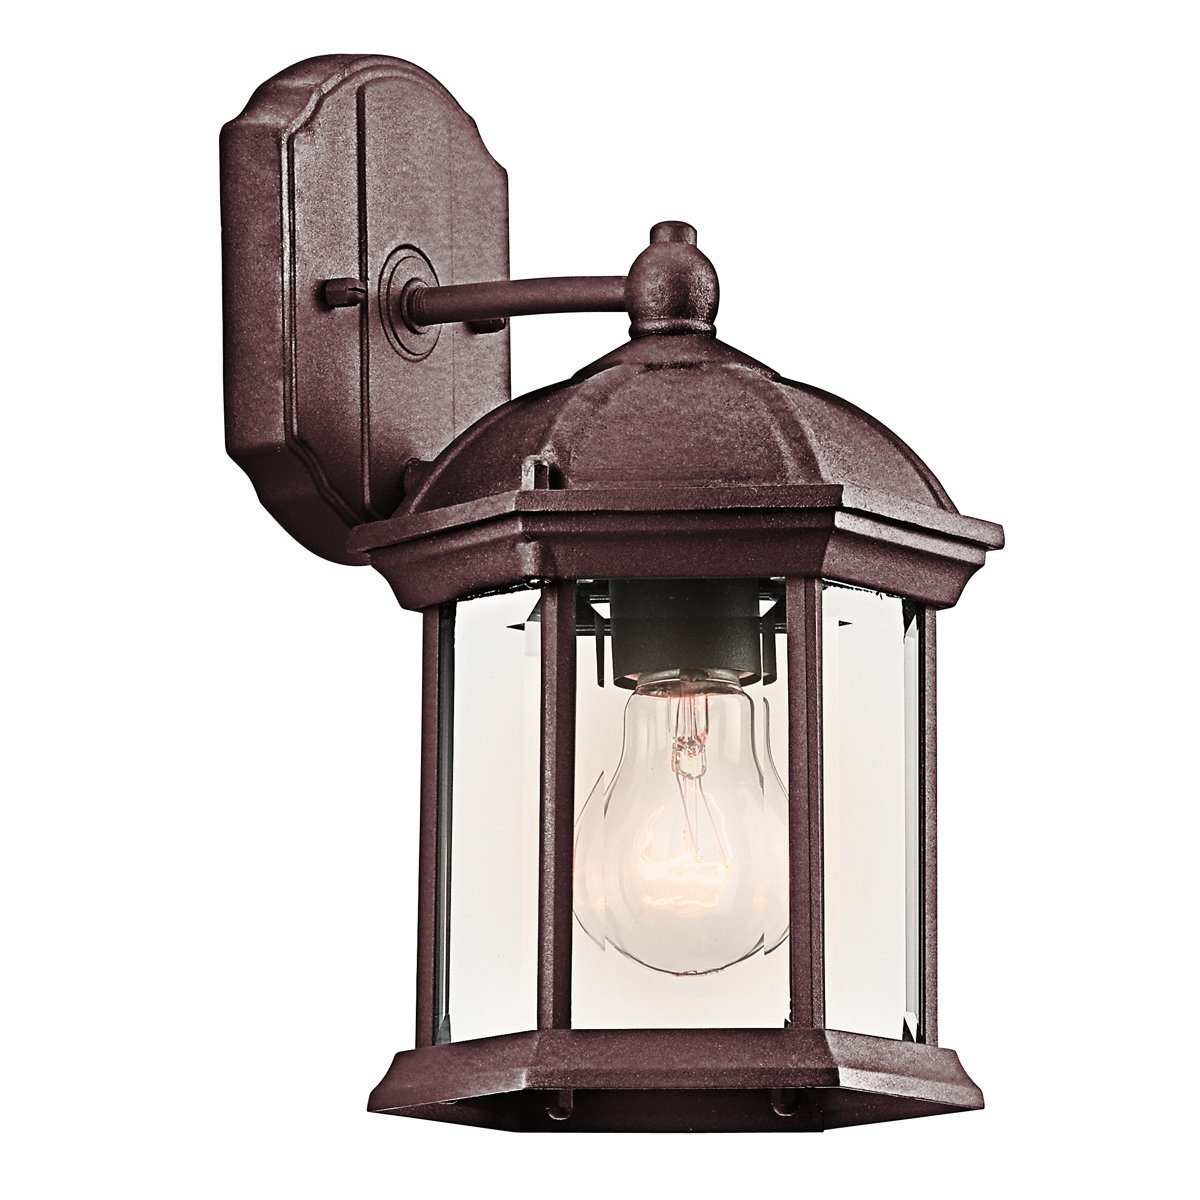 49183BK One Light Outdoor Wall Mount, Width: 6.5-Inch - Projection: 7-Inch - Height: 11-Inch By Kichler,USA